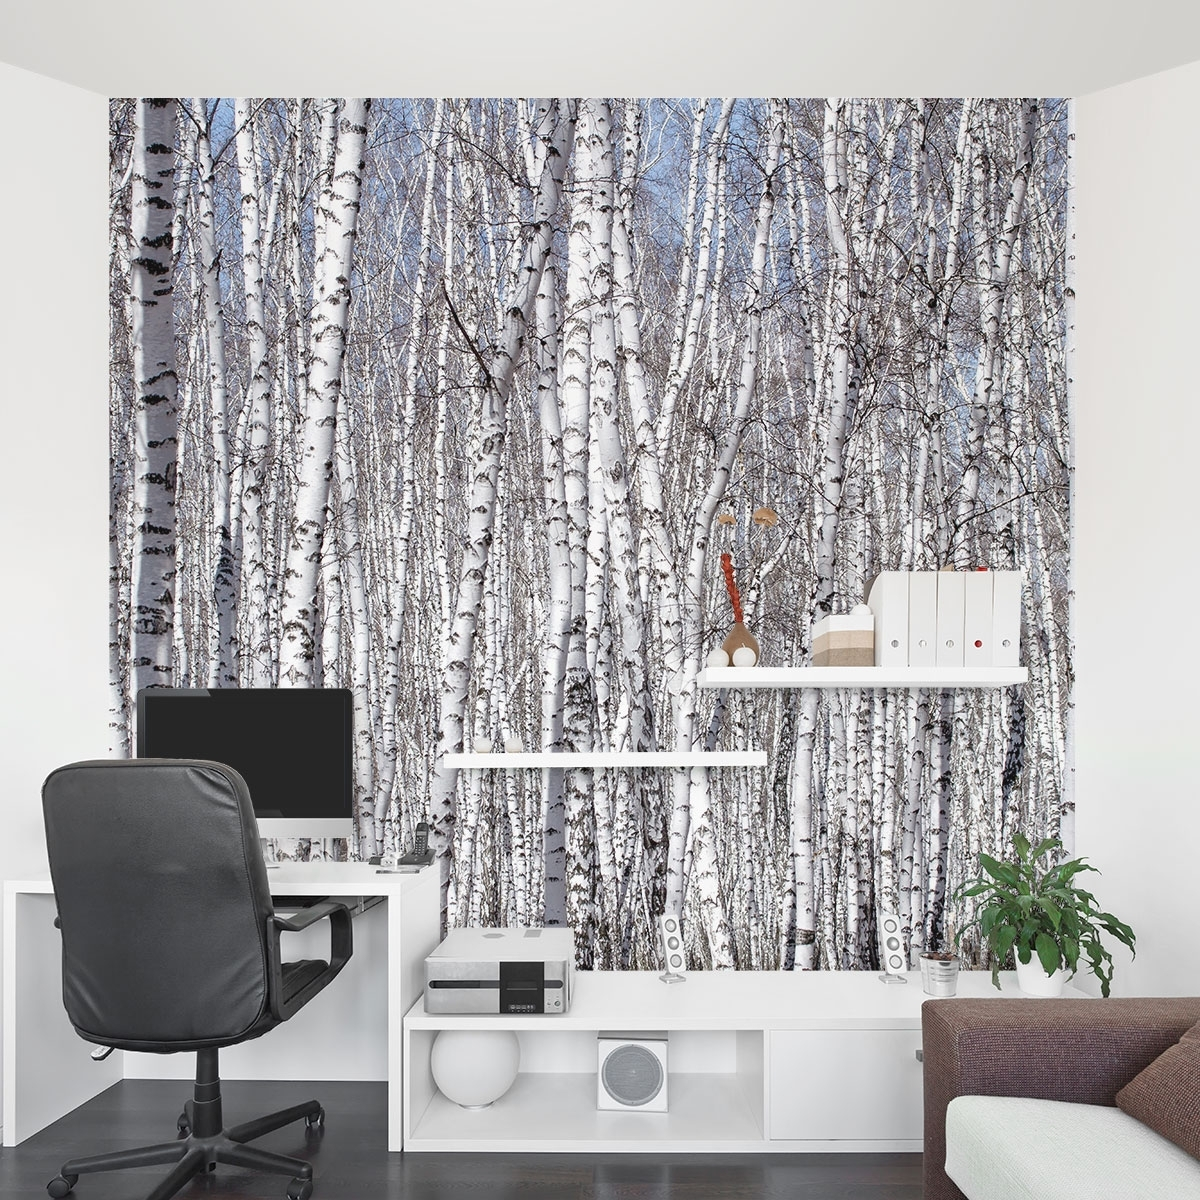 Wall Accent Decals With Most Recent Birch Trees Wall Mural (View 11 of 15)